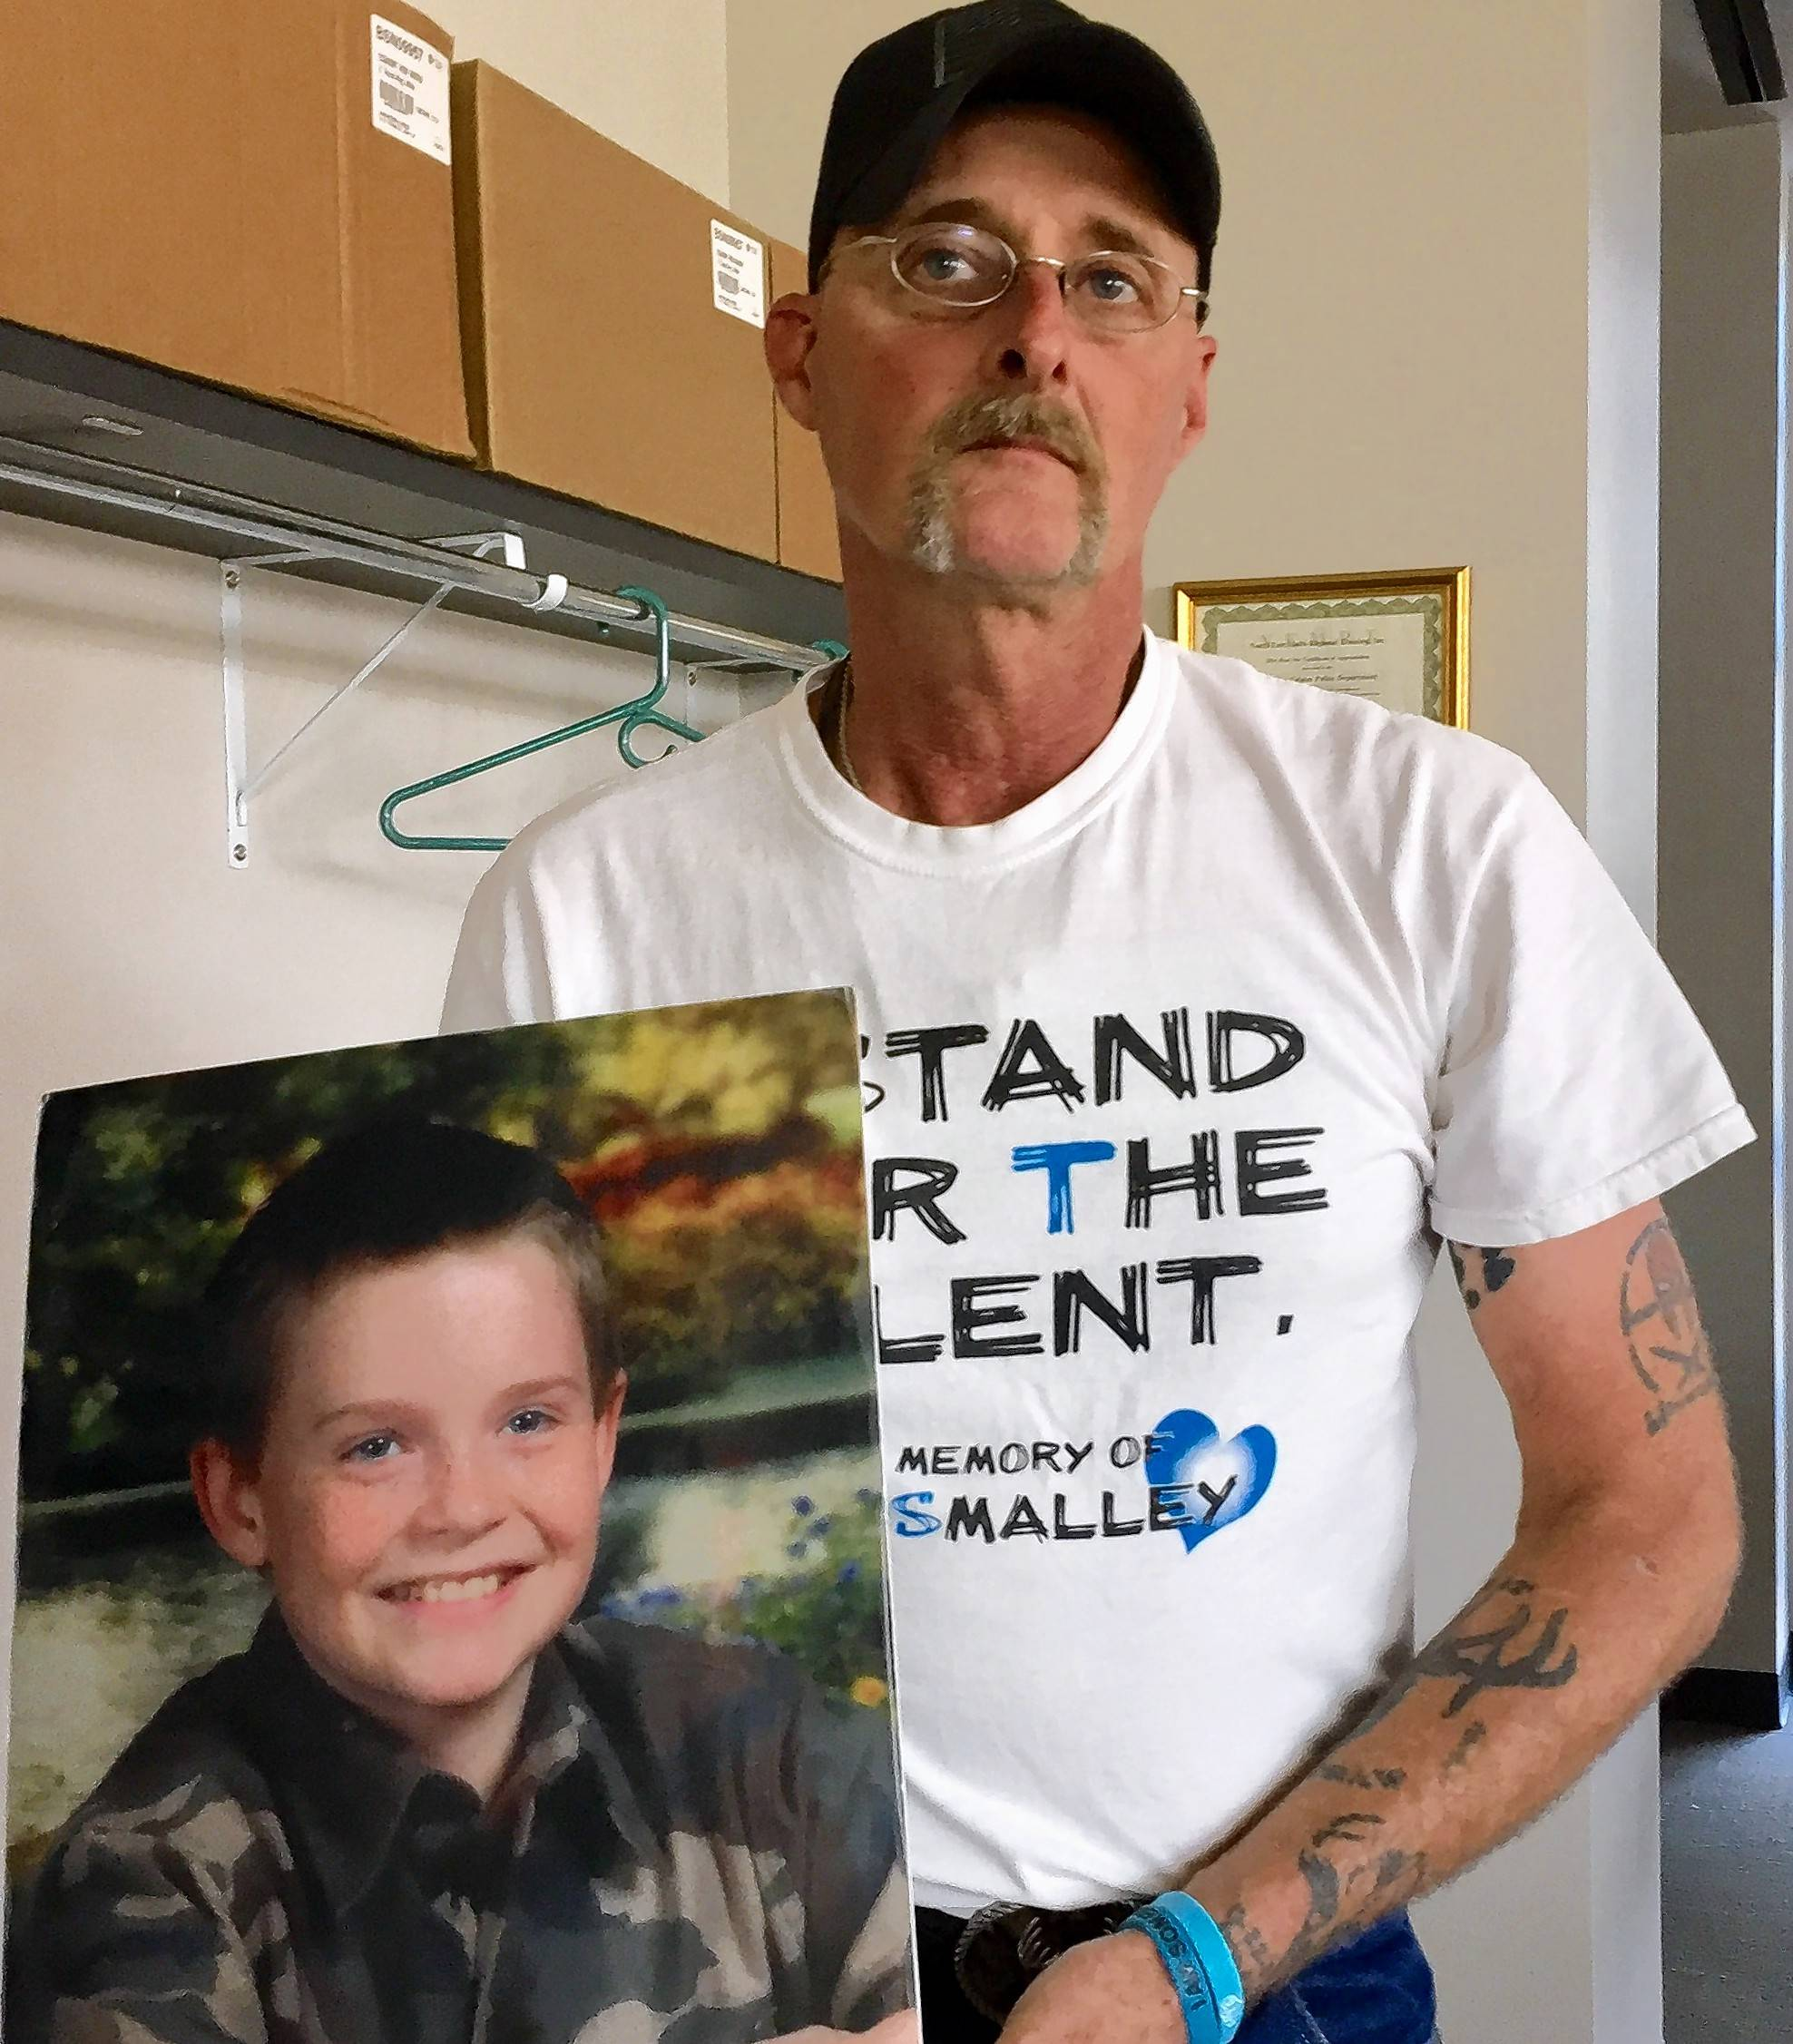 Activist Kirk Smalley of Oklahoma was inspired by the death of his son, Ty, to embark on a nationwide campaign against bullying.